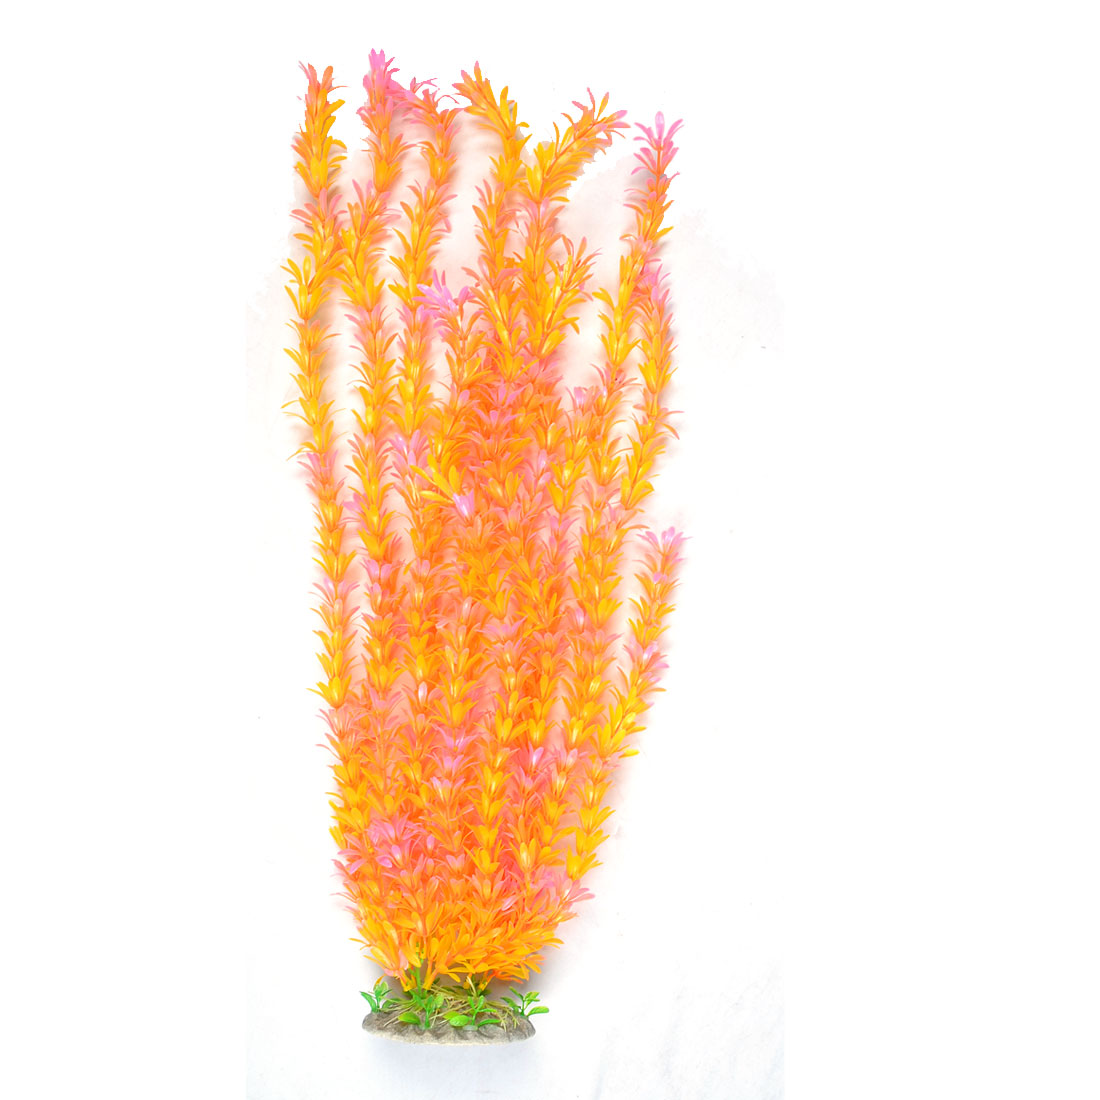 Unique Bargains Unique Bargains Decorative Fish Tank Aquarium Ceramic Base Orange Pink Water Plant